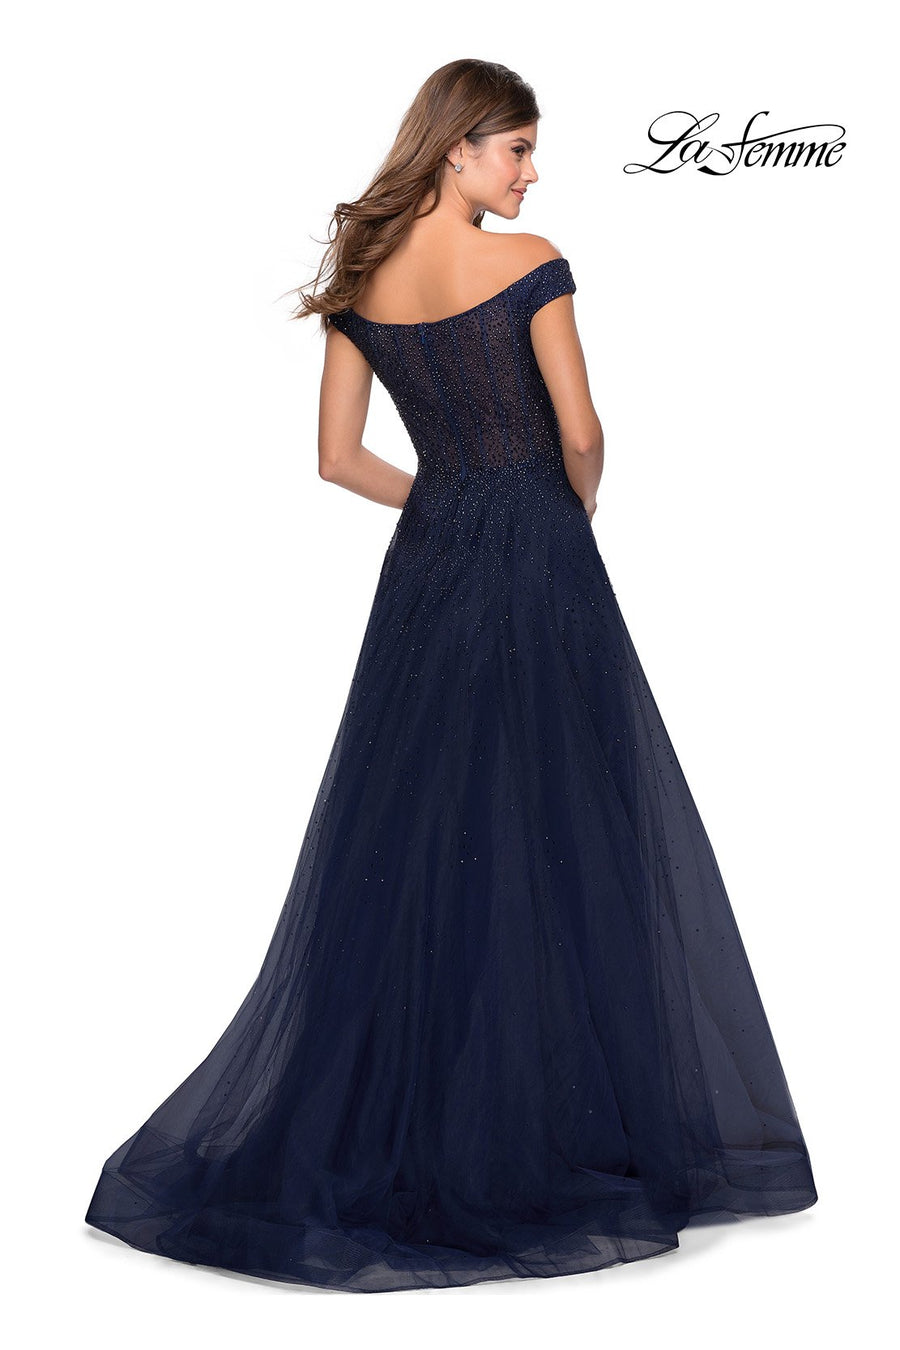 La Femme 28774 prom dress images.  La Femme 28774 is available in these colors: Dark Berry, Navy.